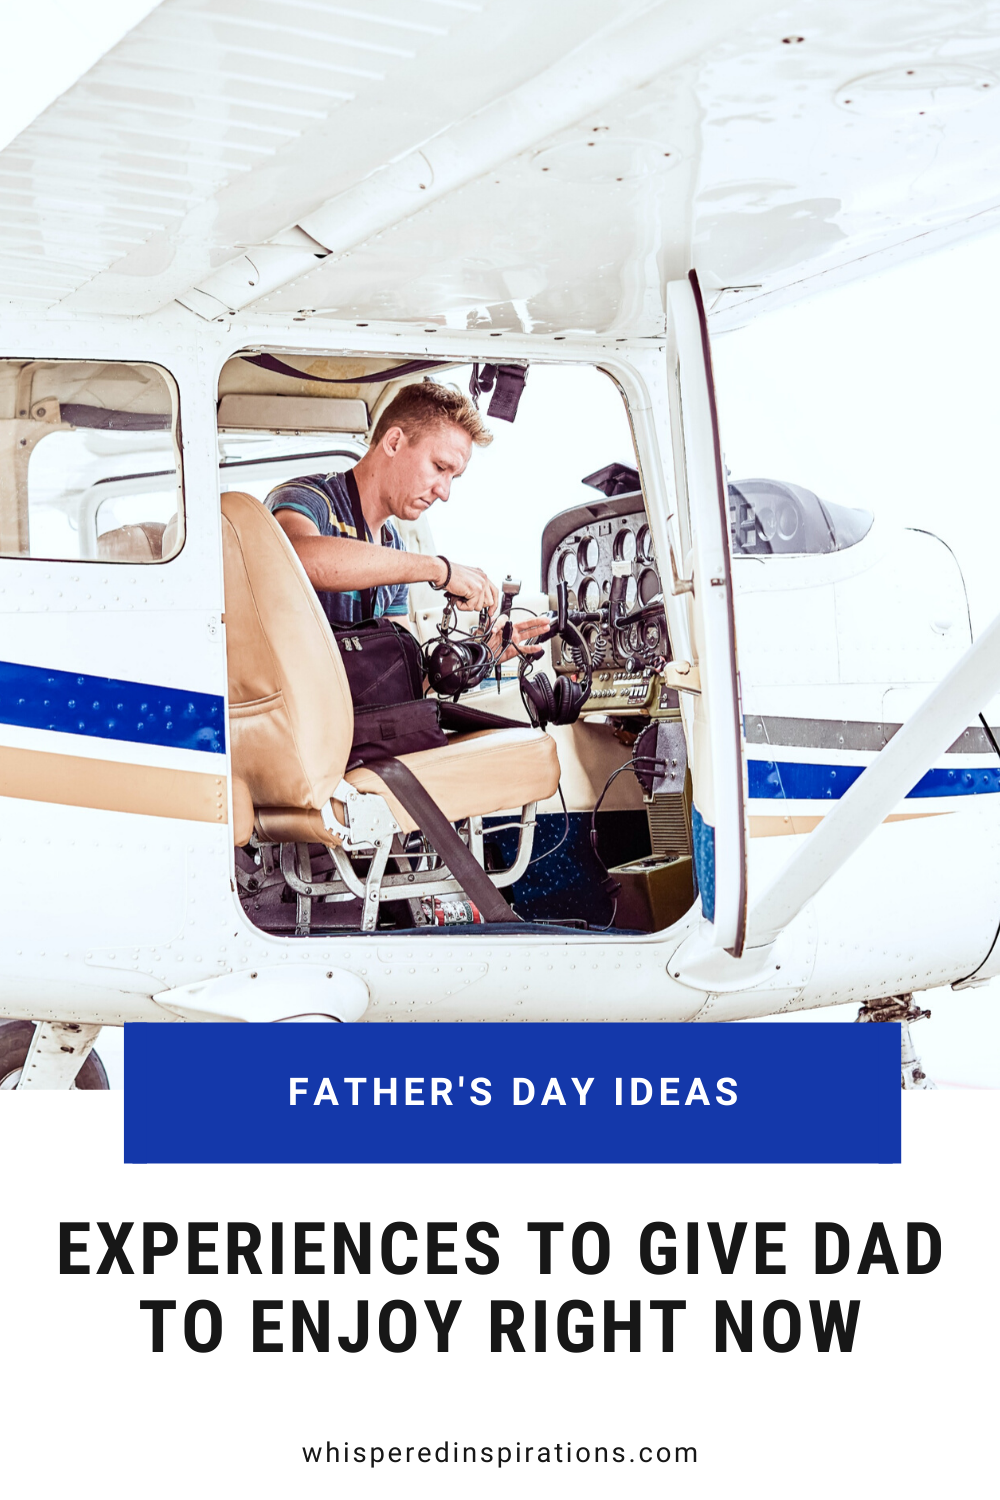 A man is getting ready to fly his own plane. One of many great experiences you can give dad to enjoy Father's Day right now.